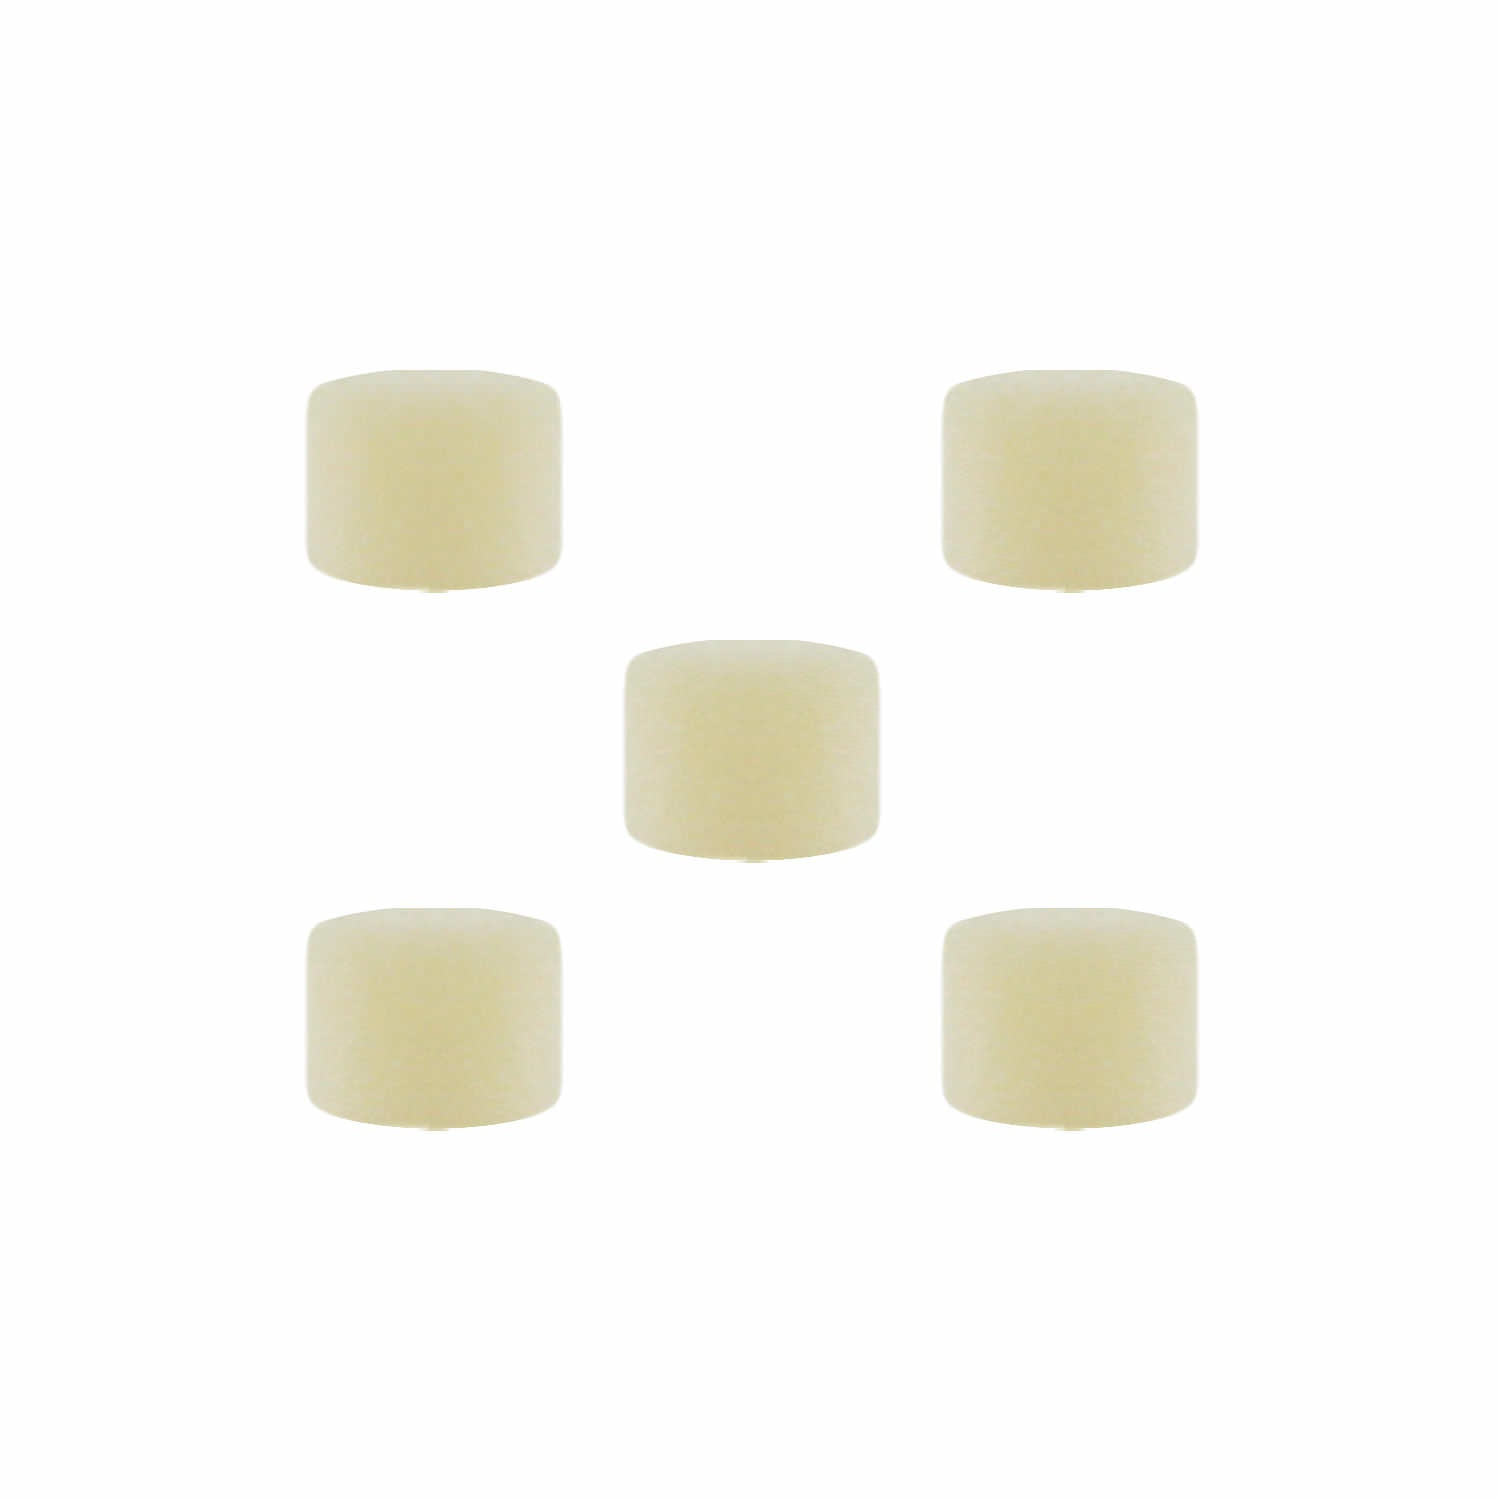 Air Filters for Neb-u-Lite LX2 Nebulizer Compressor (5 per pack)